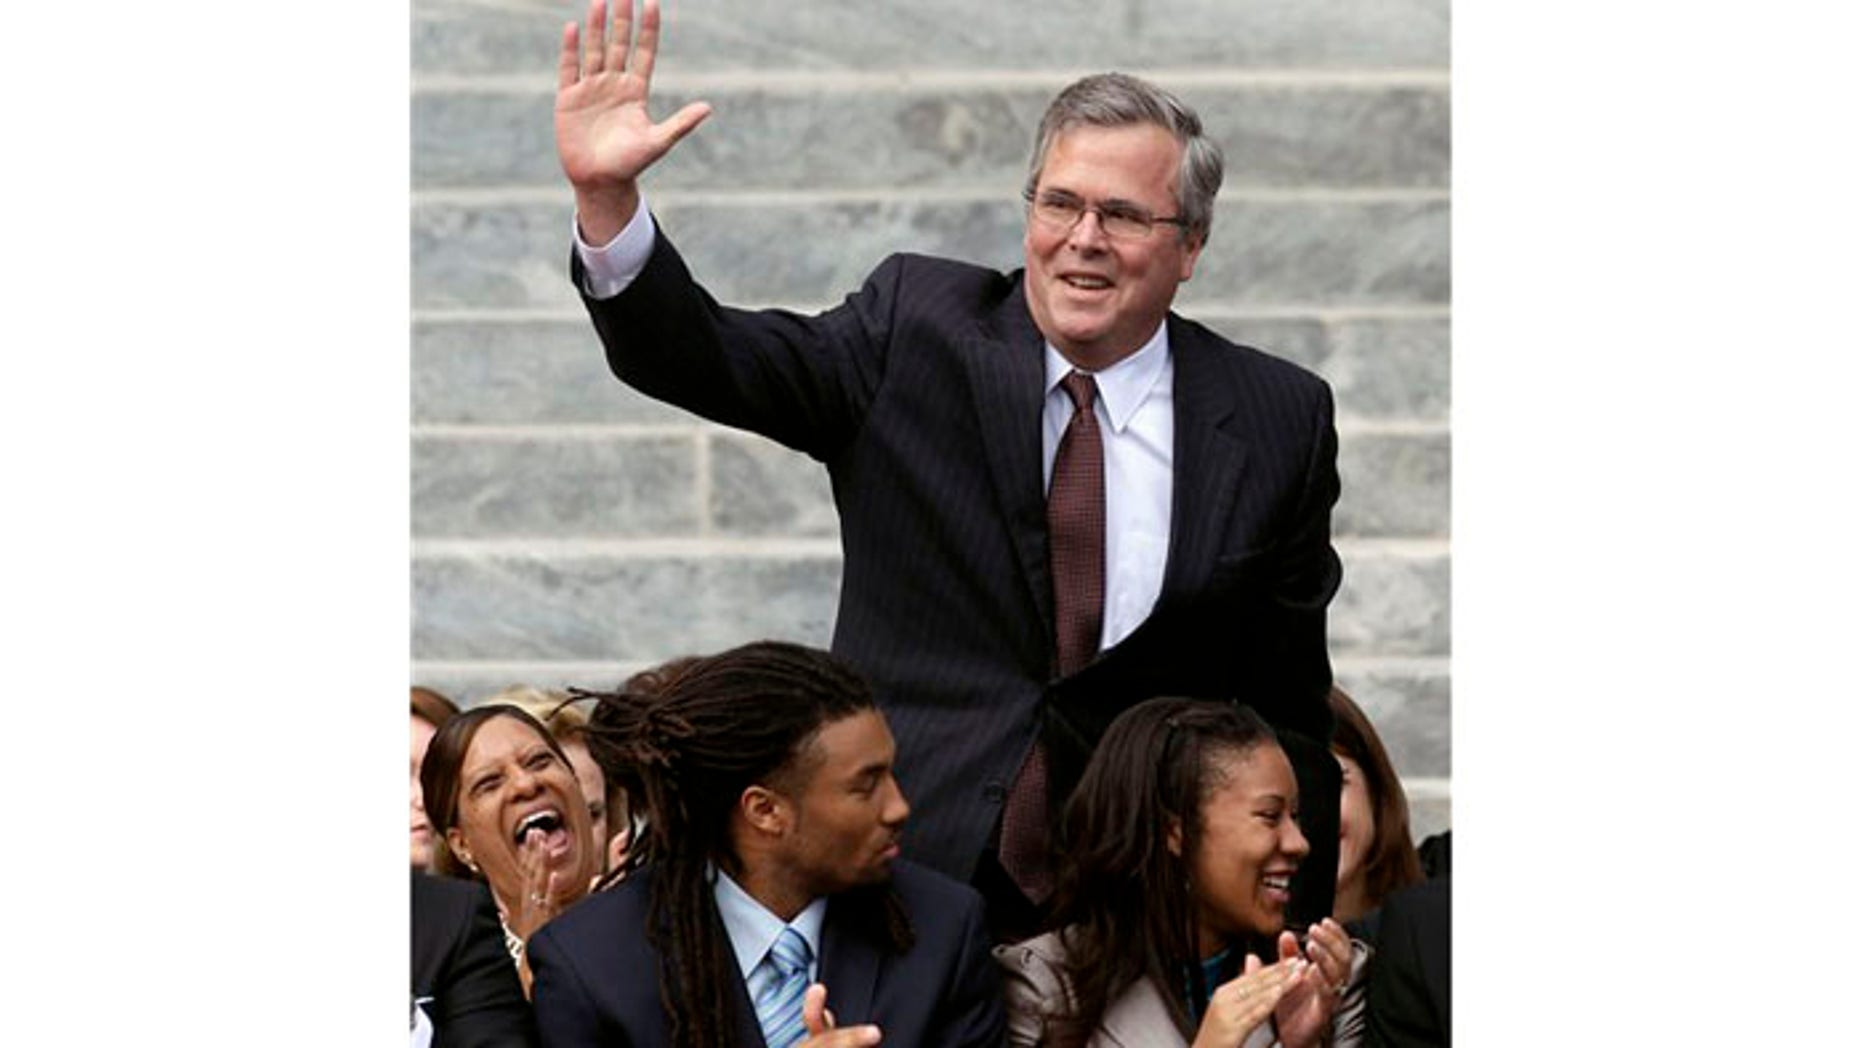 January 2011: Former Florida Gov. Jeb Bush waves as he is introduced to the crowd during inauguration ceremonies for Republican Gov. Rick Scott outside the Old Capitol in Tallahassee, FL.